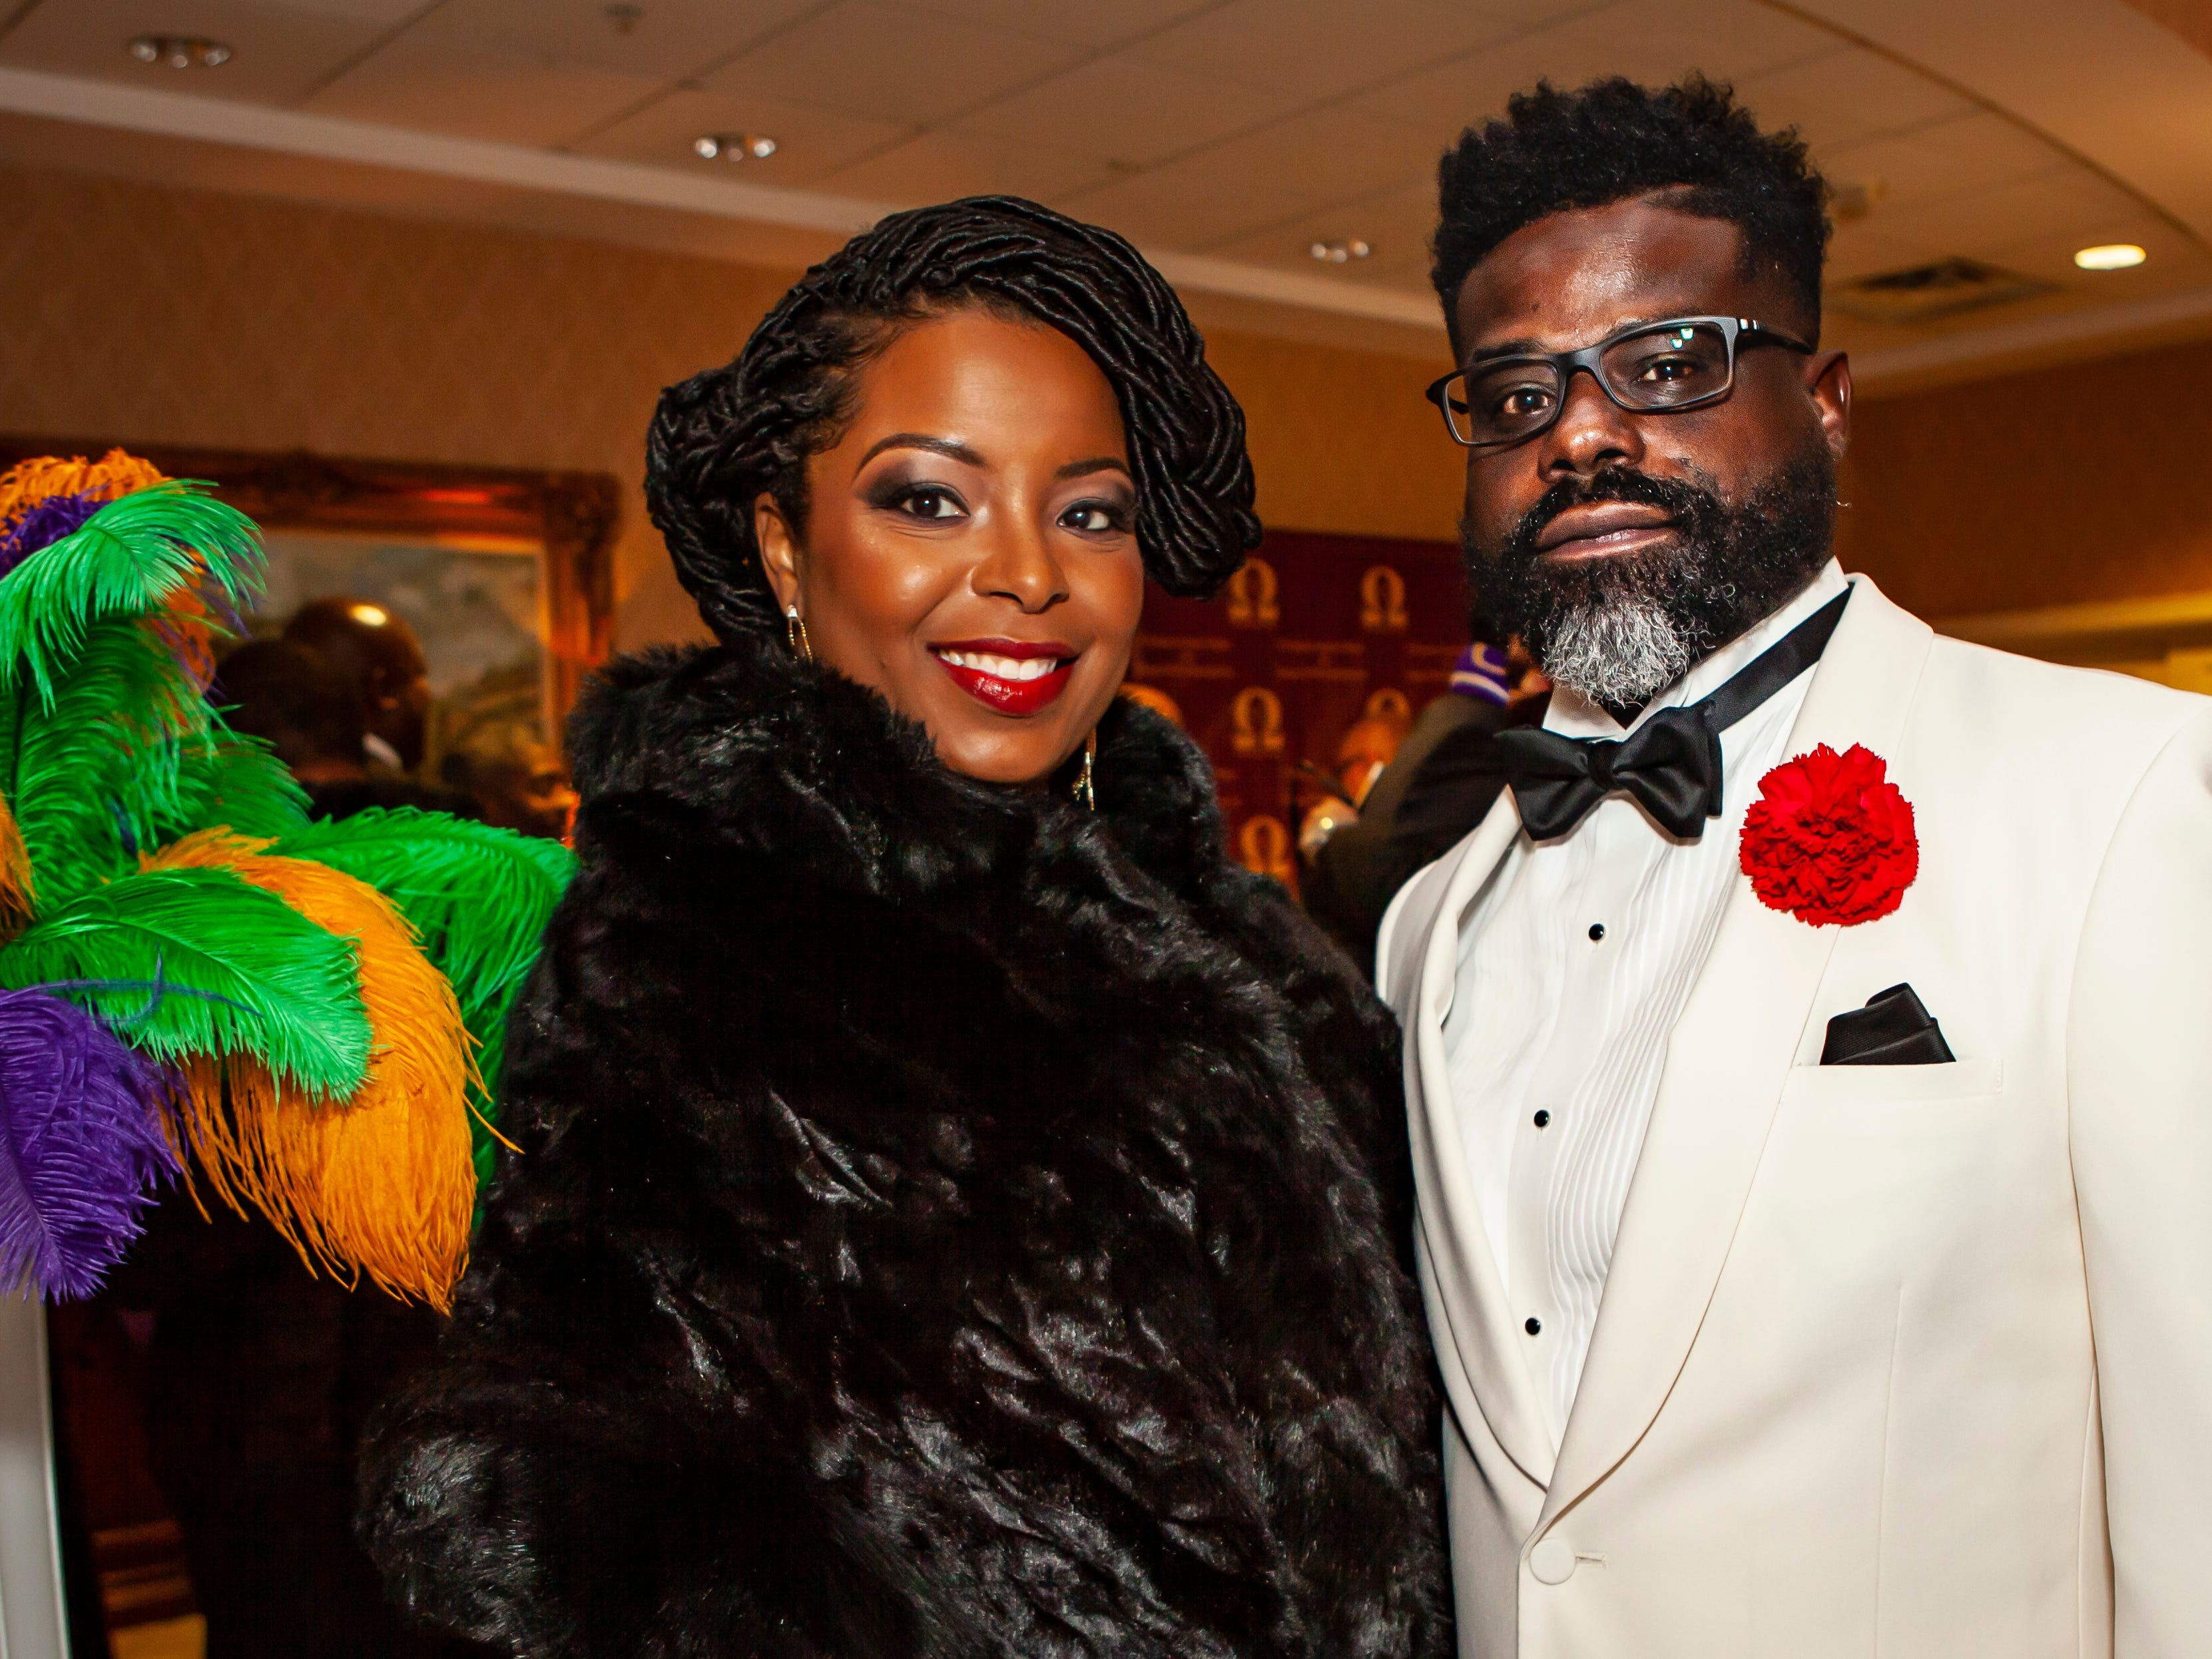 Rhiannon Wilson and Jeremy Simmons at the Omega Psi Phi Mardi Gras Party, held Saturday, Feb. 9 at Stones River Country Club in Murfreesboro.